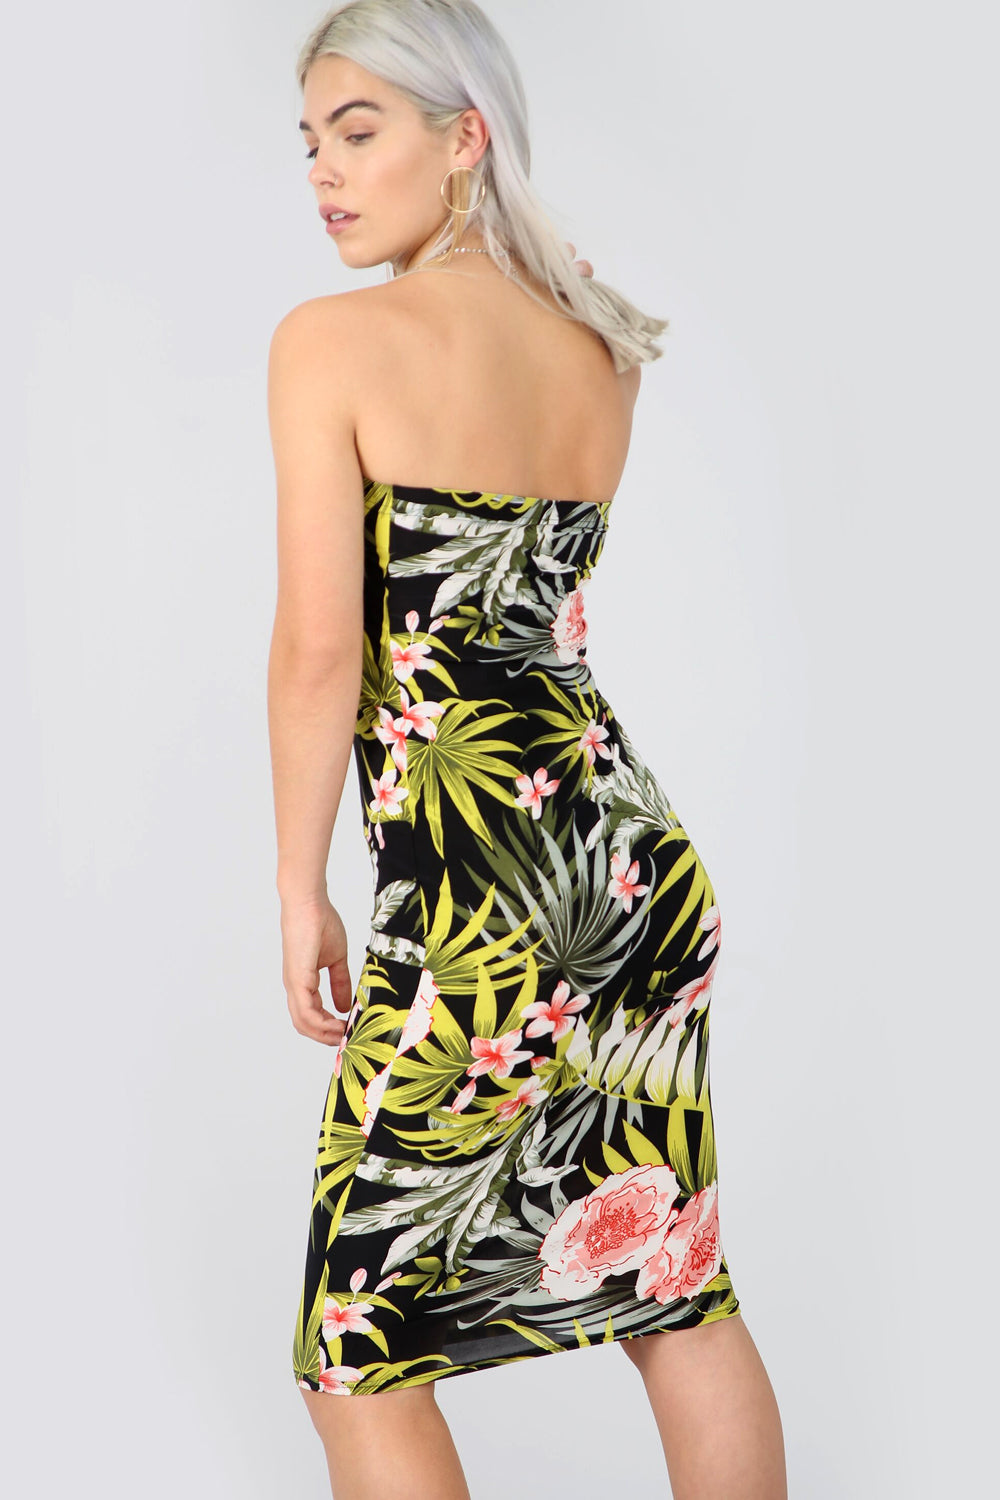 Bandeau Green Tropical Print Midi Tube Dress - bejealous-com